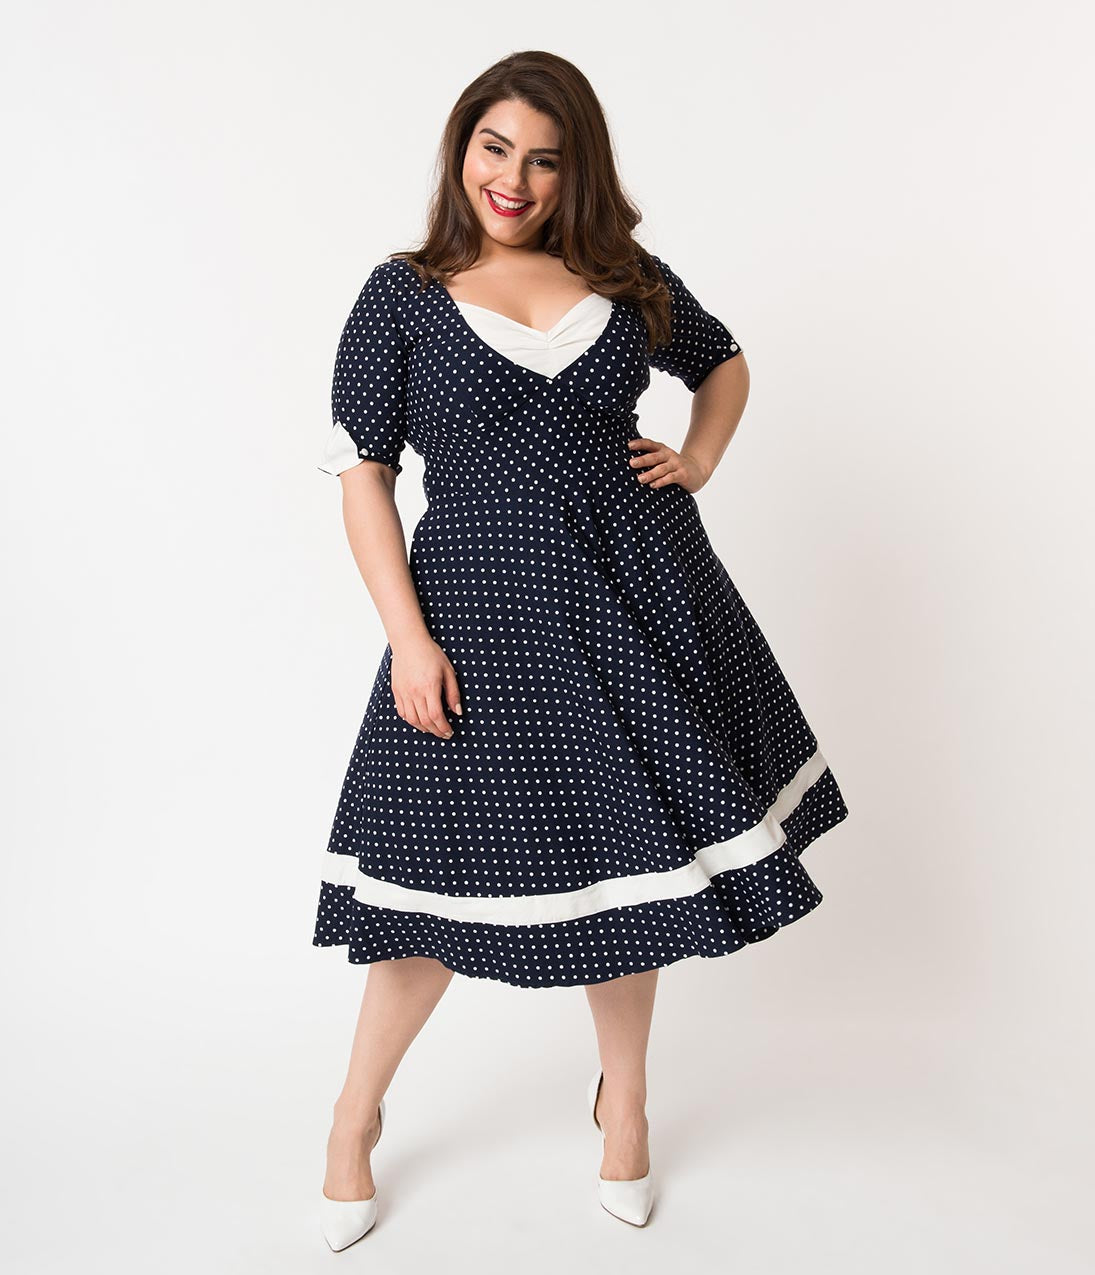 1950s Swing Dresses | 50s Swing Dress Unique Vintage Plus Size 1950S Style Navy  White Dotted Sleeved Serena Swing Dress $74.00 AT vintagedancer.com